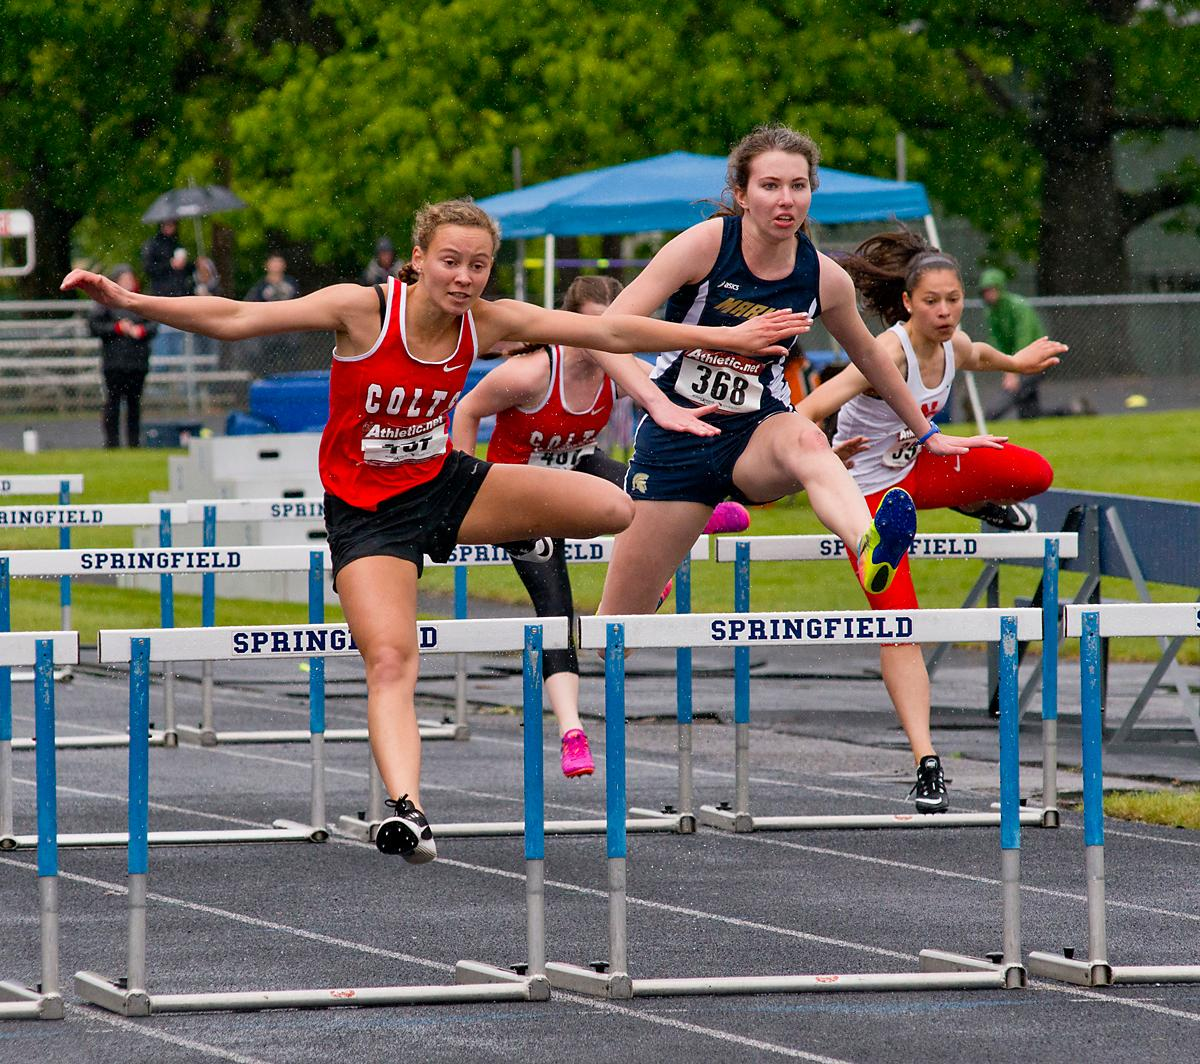 Tara Crosswhite from Thurston wins the 100 meter hurdles with a time of 16.17 at the 5A-3 Midwestern League District Track Meet. Photo by Dan Morrison, Oregon News Lab